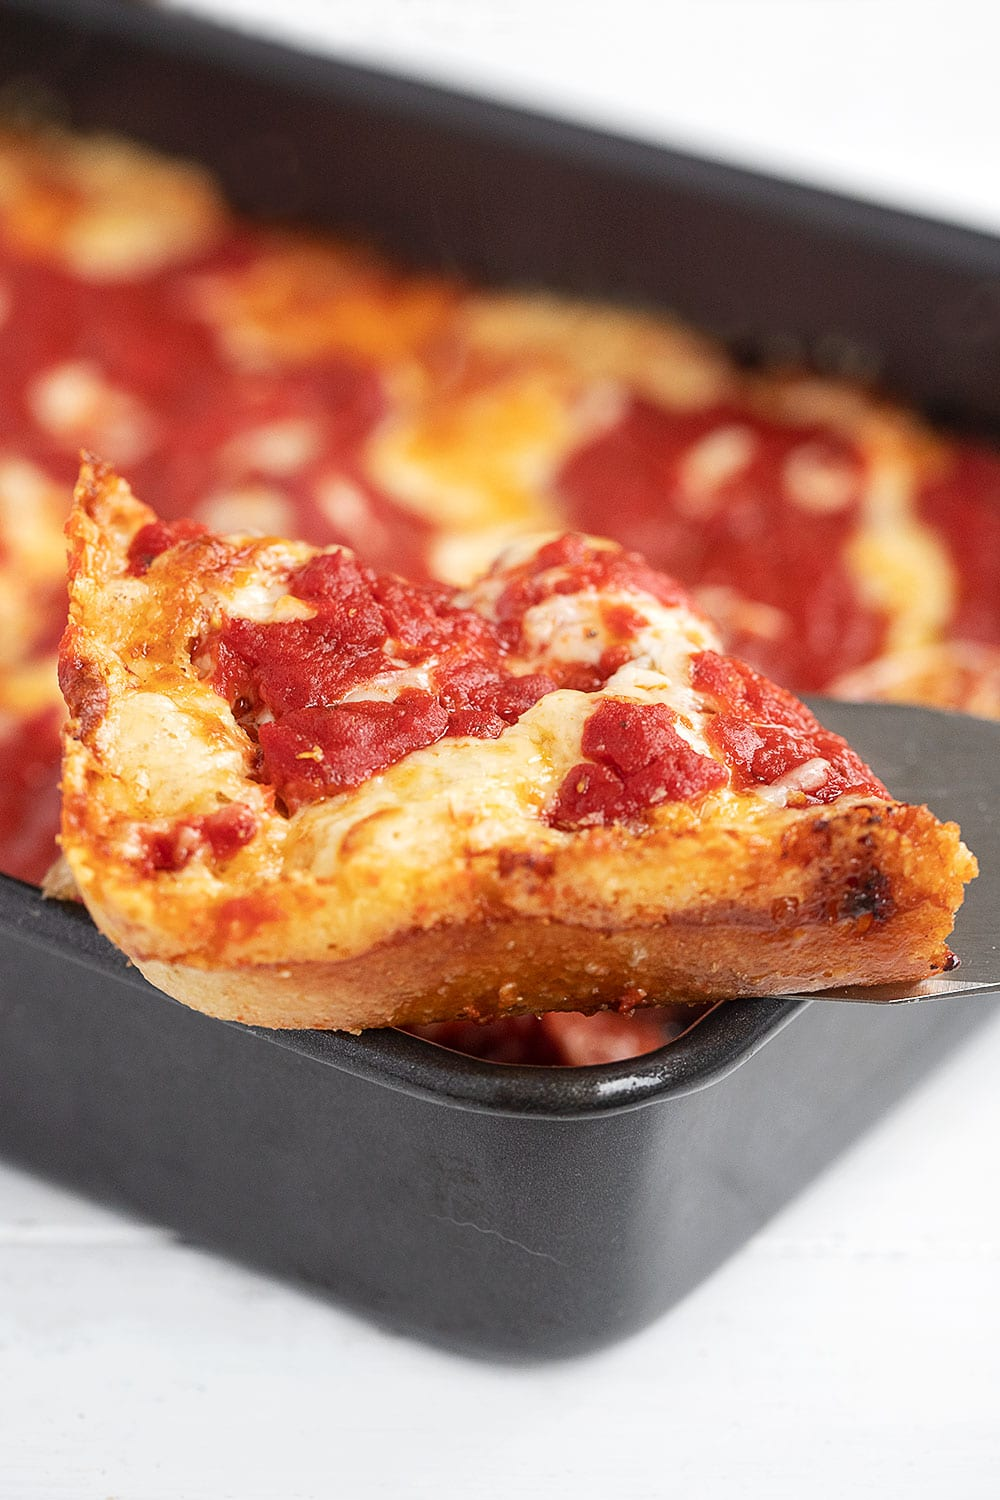 Slice of Detroit Style Pizza on spatula, showing crispy edges